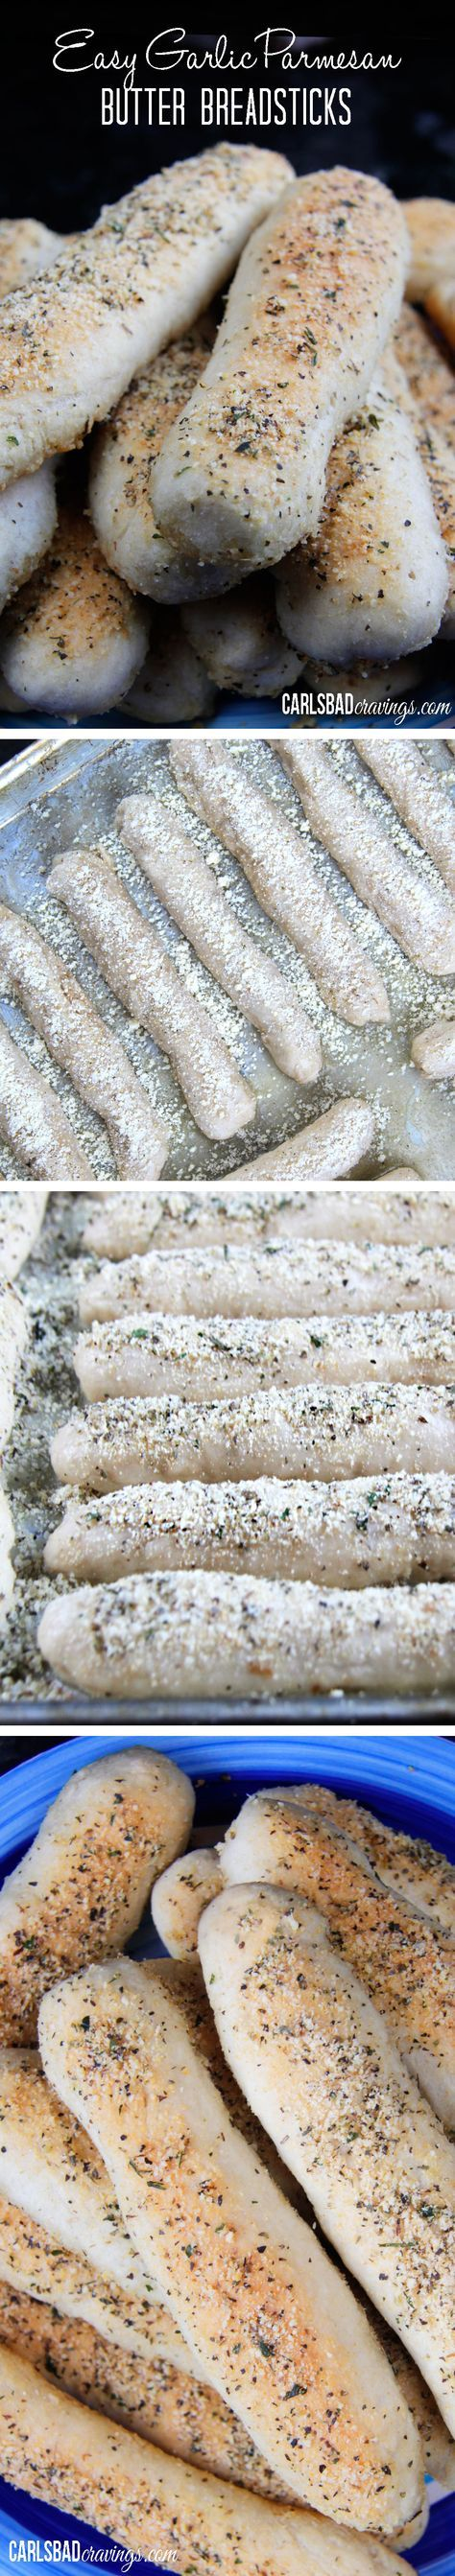 Perfect for THANKSGIVING!  You NEED this recipe in your life! Soft, buttery, melt in your mouth breadsticks dusted with Parmesan and herbs. Better than any restaurant breadsticks and super simple!